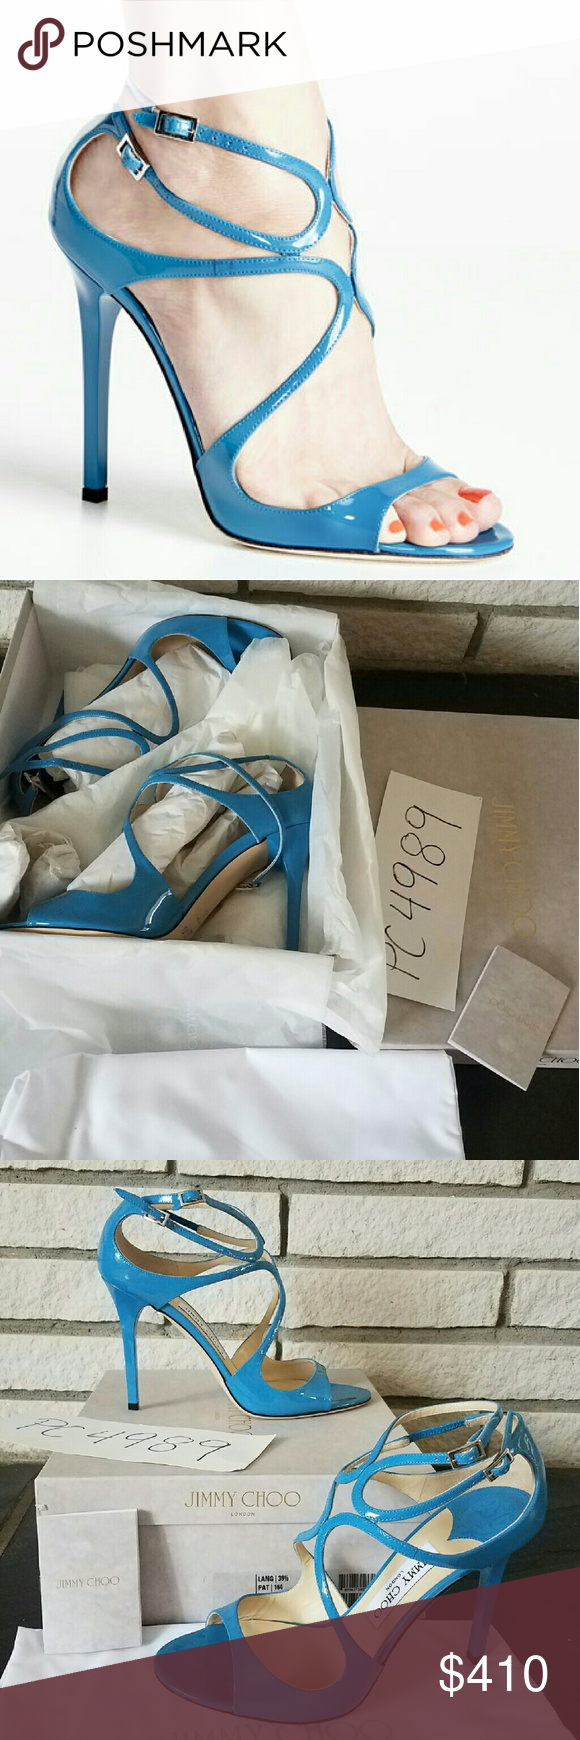 NWT Jimmy Choo LANG blue heels 39.5 US 9 9.5 absolutely authentic Jimmy Choo LANG blue robot color heels pumps size 39.5 US 9 9.65 complete with box, dust bag and if you need a copy of receipt can be provided upon request as a ultimate proof of purchase and authenticity!! Lang is the most known and iconic of jimmy choo style with its 4 inch heel its as comfortable as it is sexy,any questions just ask Jimmy Choo Shoes Heels